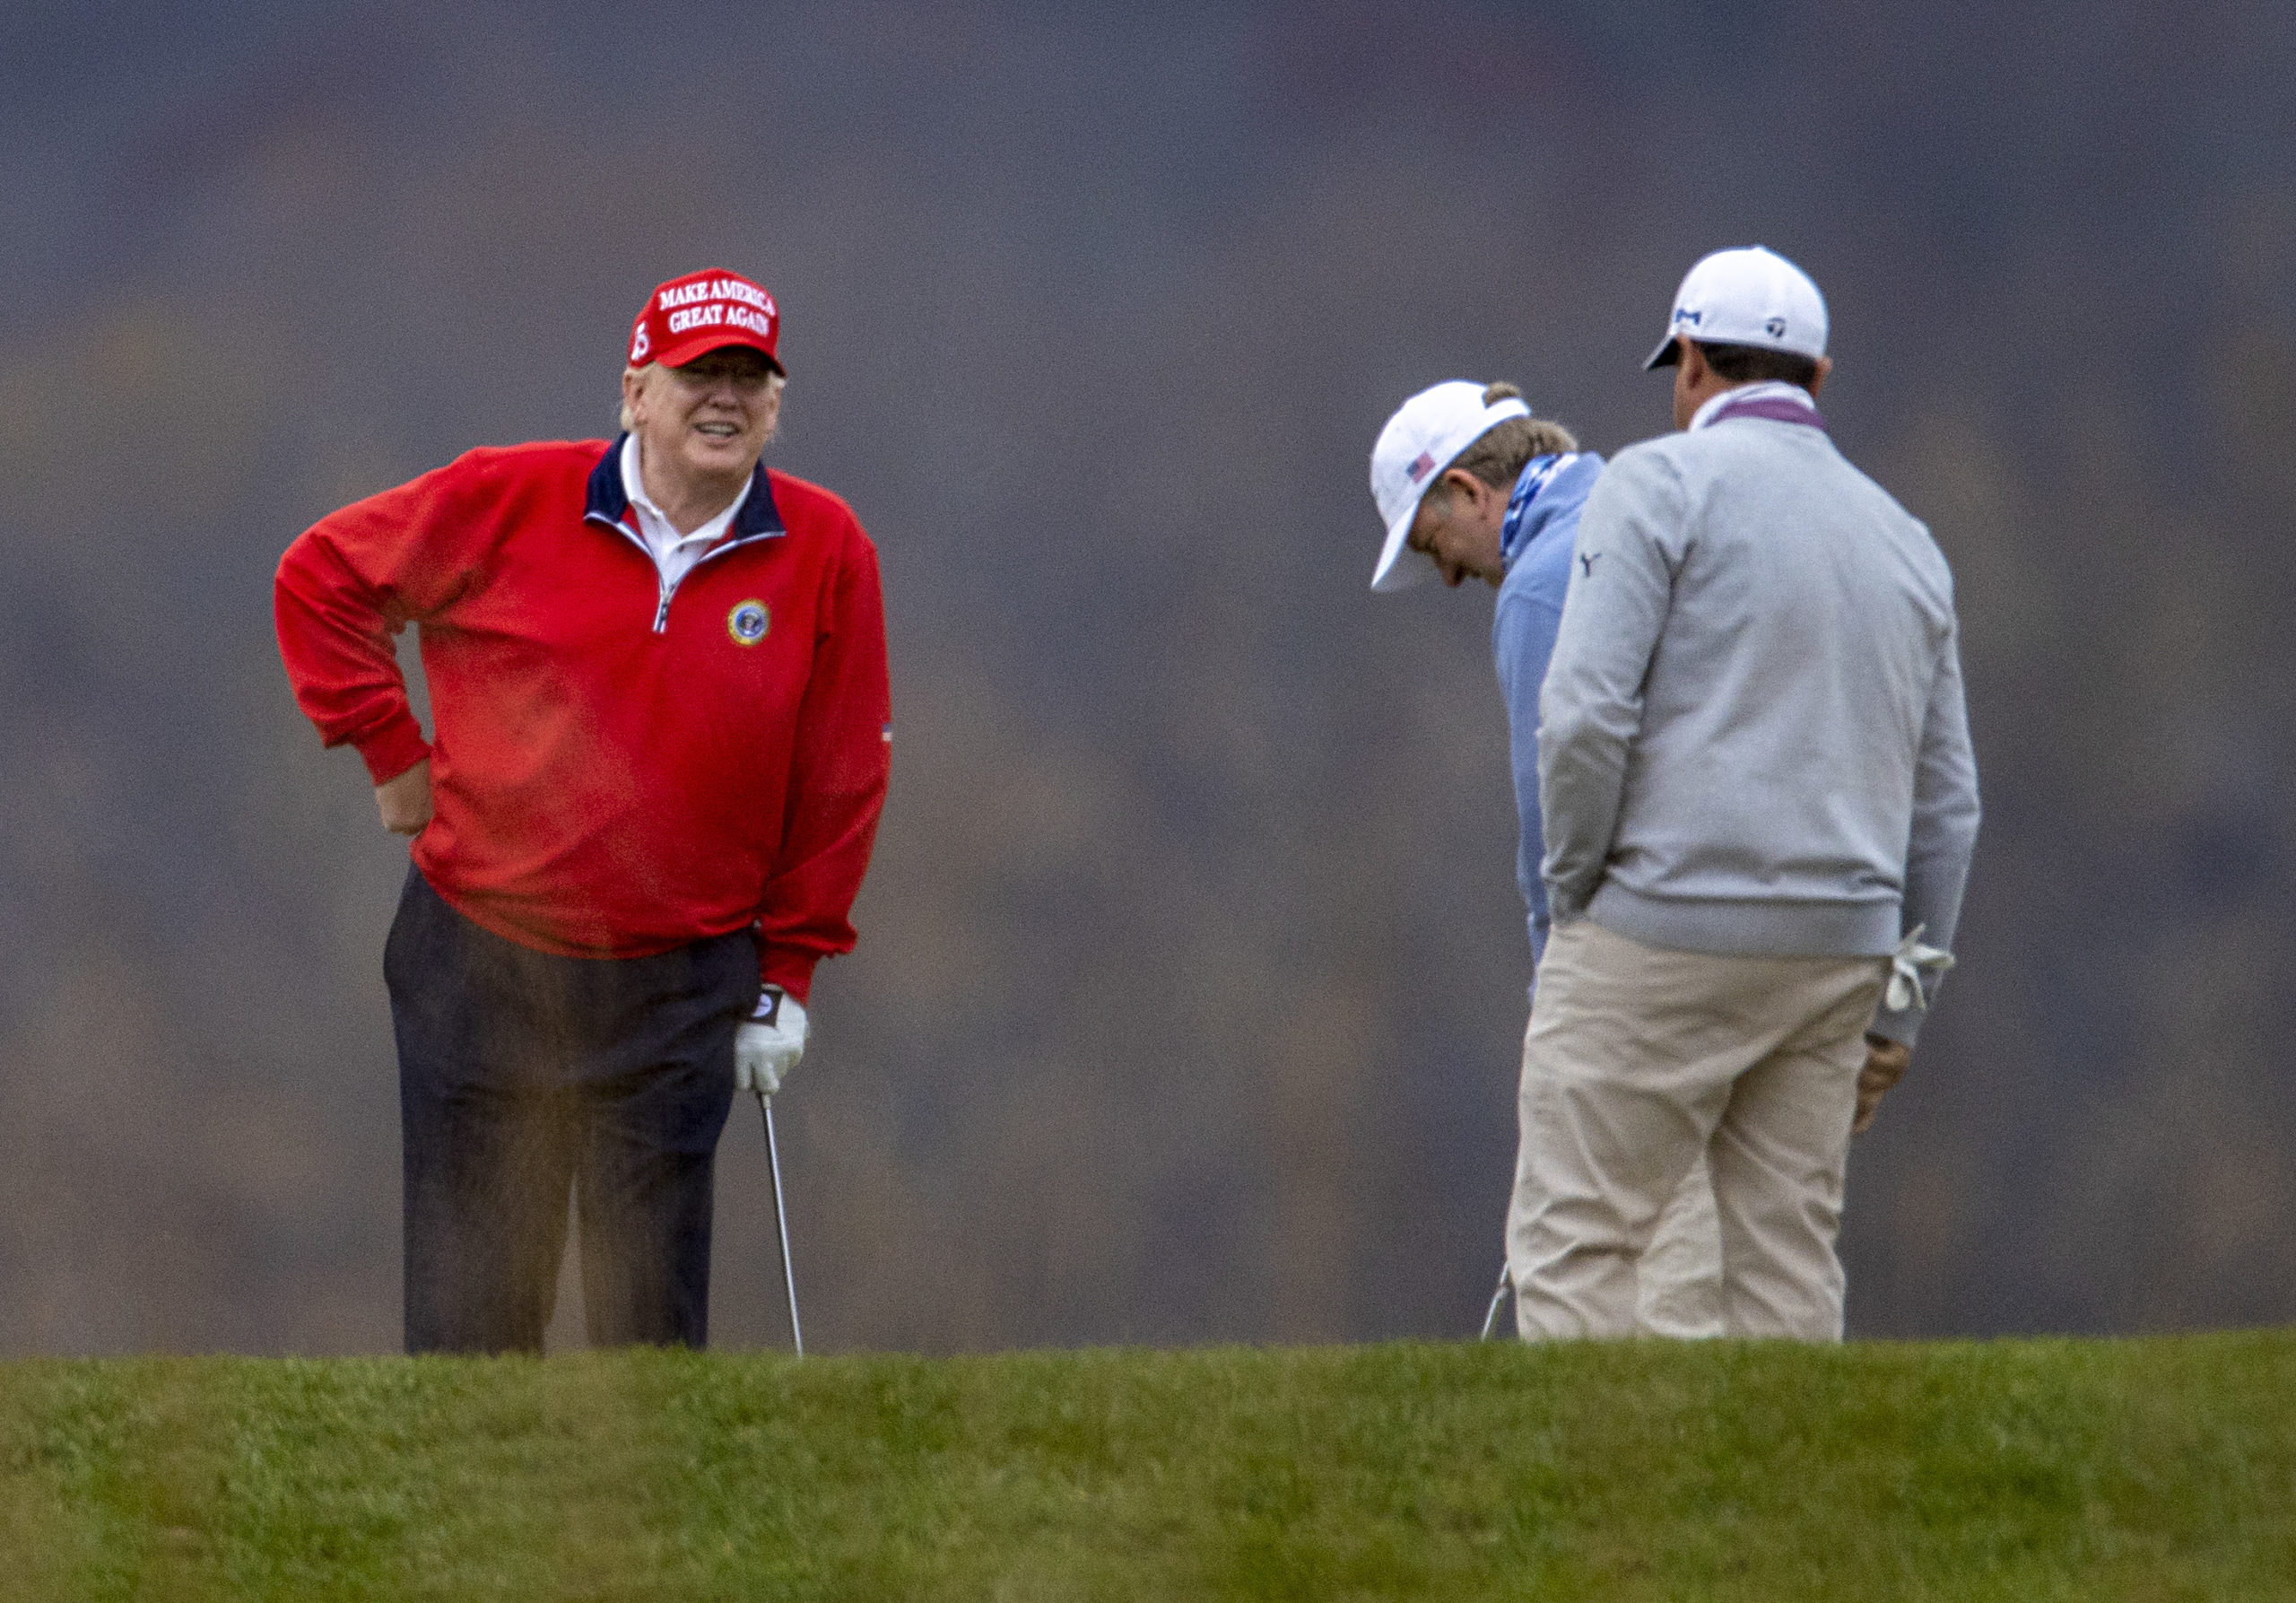 STERLING, VIRGINIA - NOVEMBER 27: US President Donald Trump golfs at Trump National Golf Club on November 27, 2020 in Sterling, Virginia. President Trump heads to Camp David for the weekend after playing golf. (Photo by Tasos Katopodis/Getty Images)